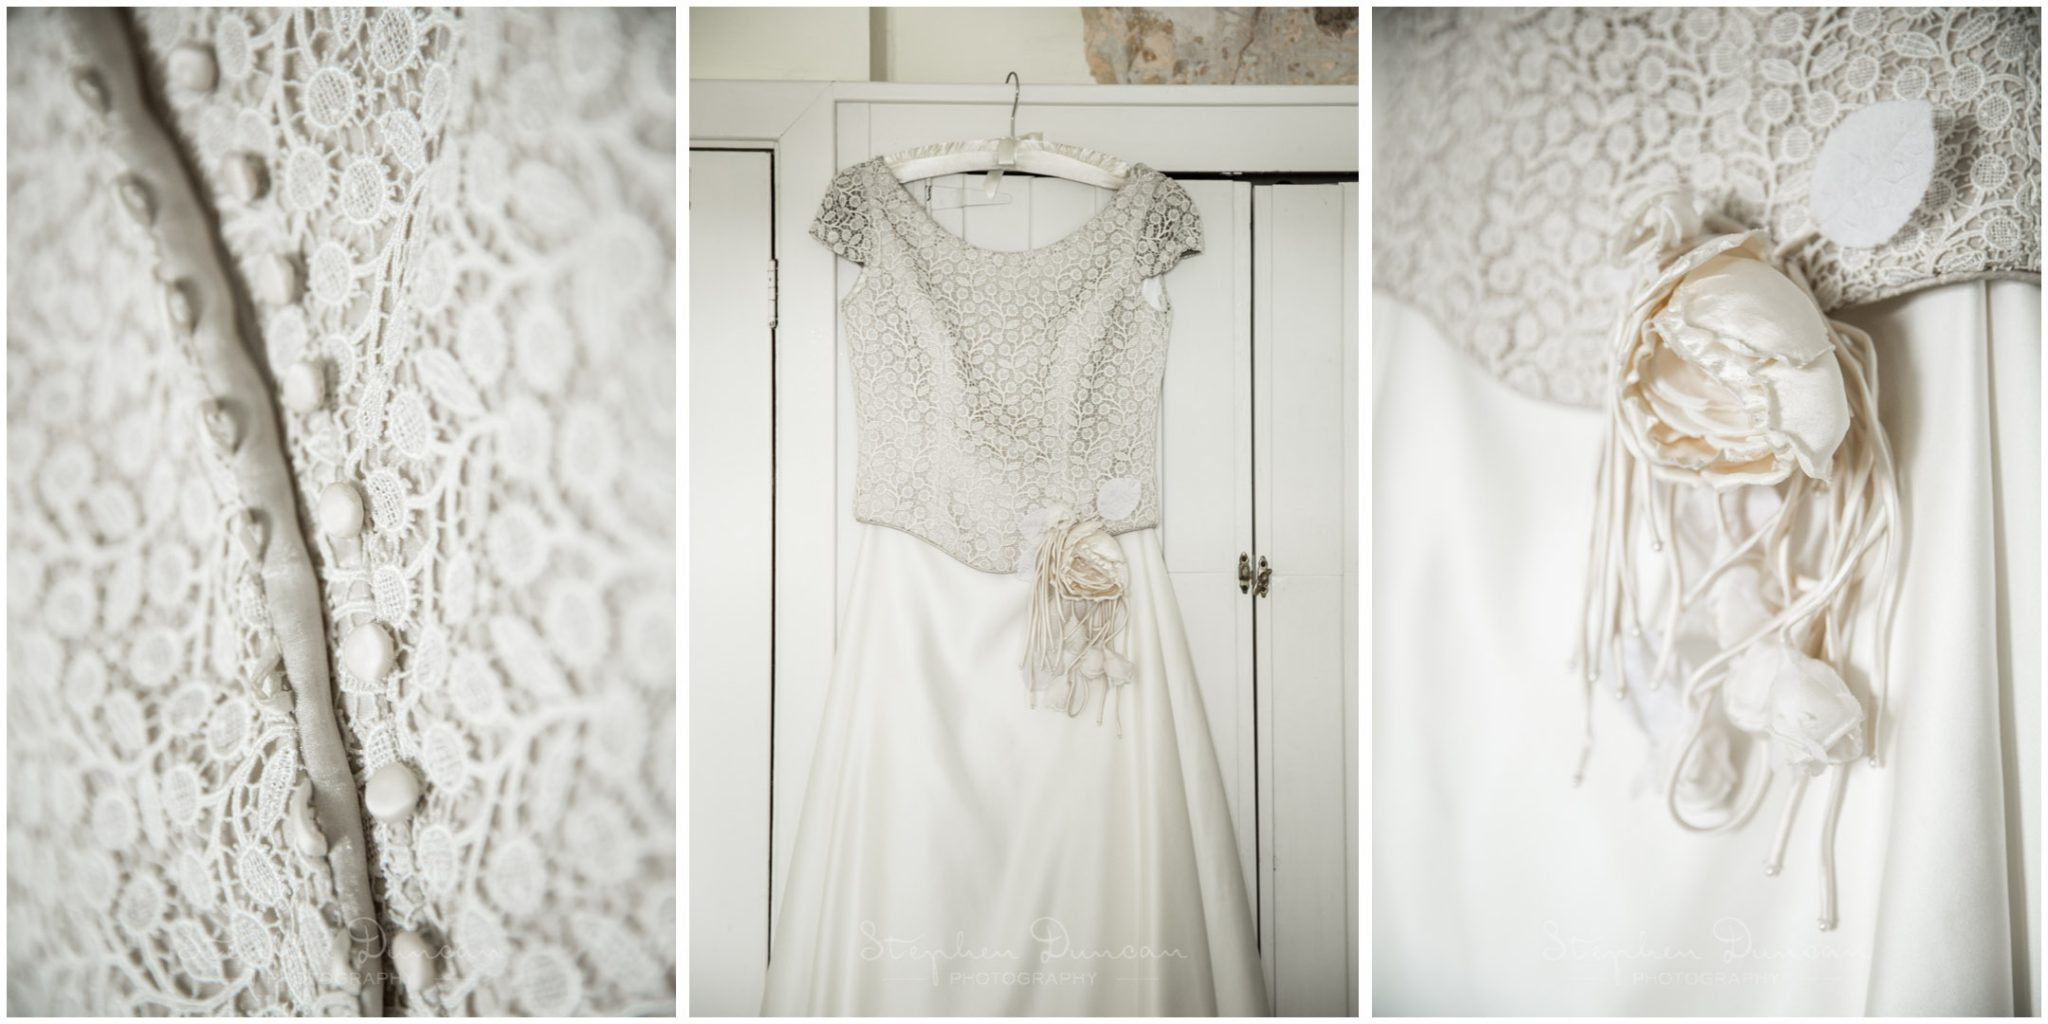 Lymington wedding photography dress hanging